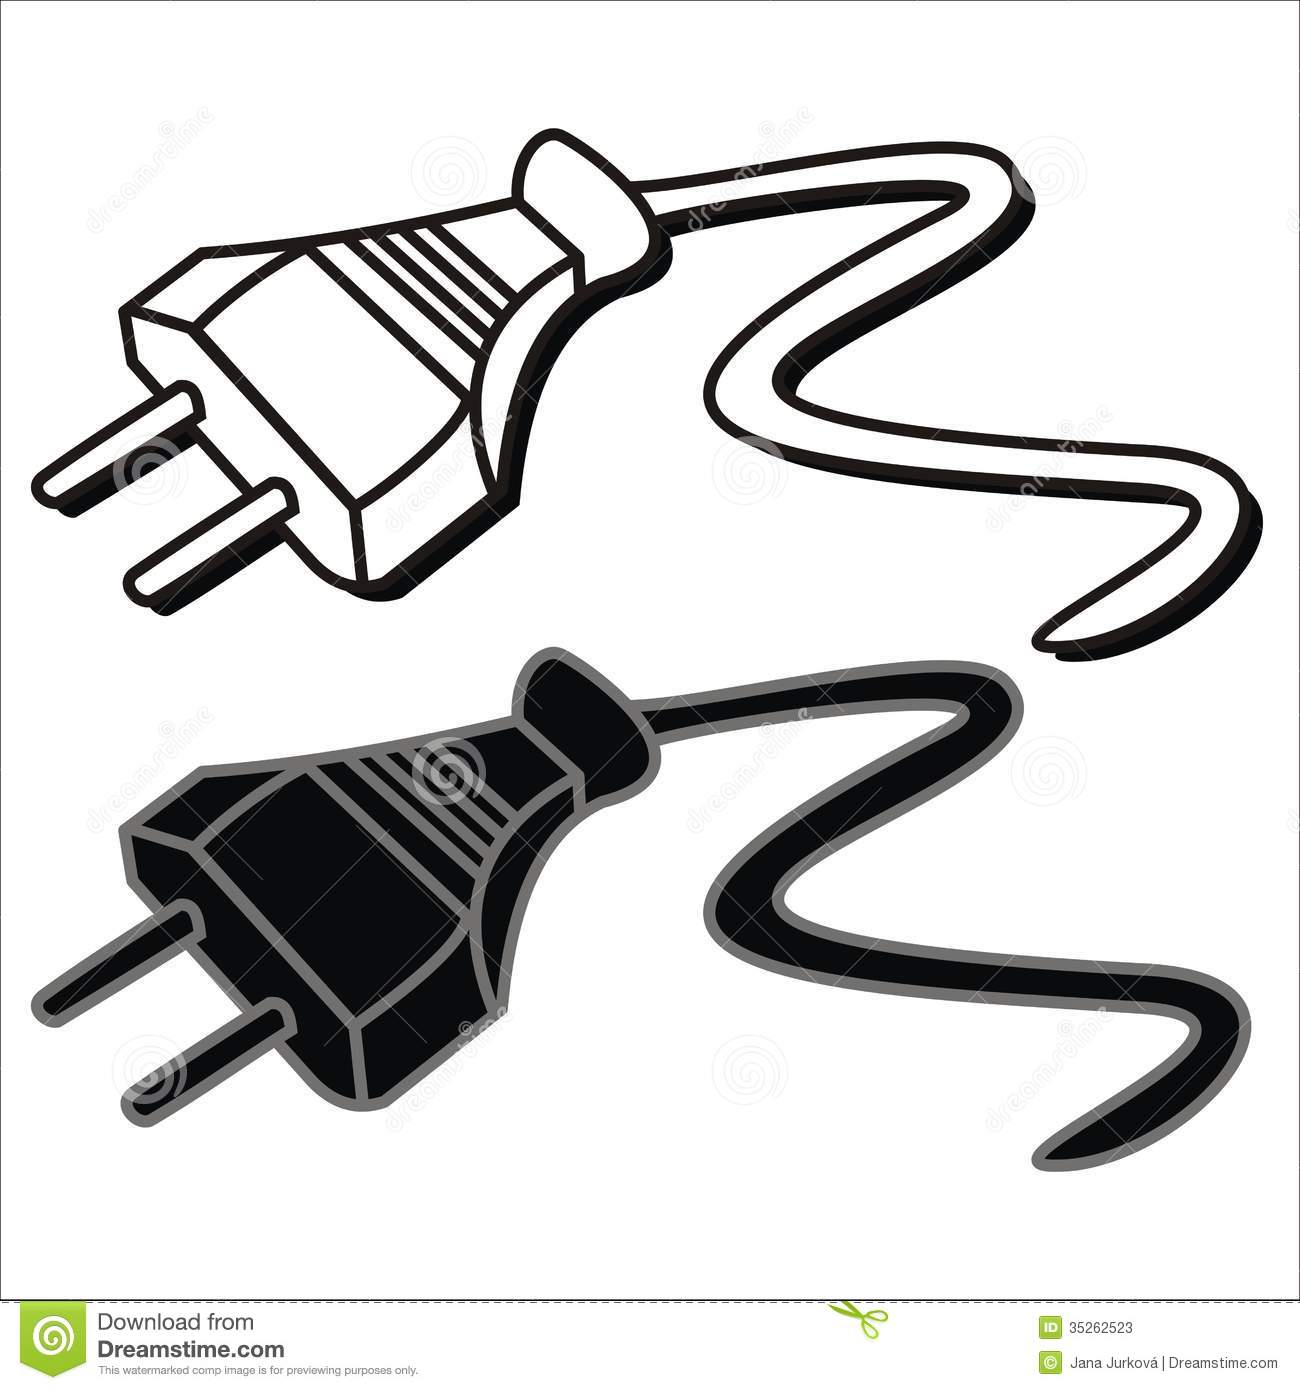 Wire clipart electrical wire And Clipart plug  Black